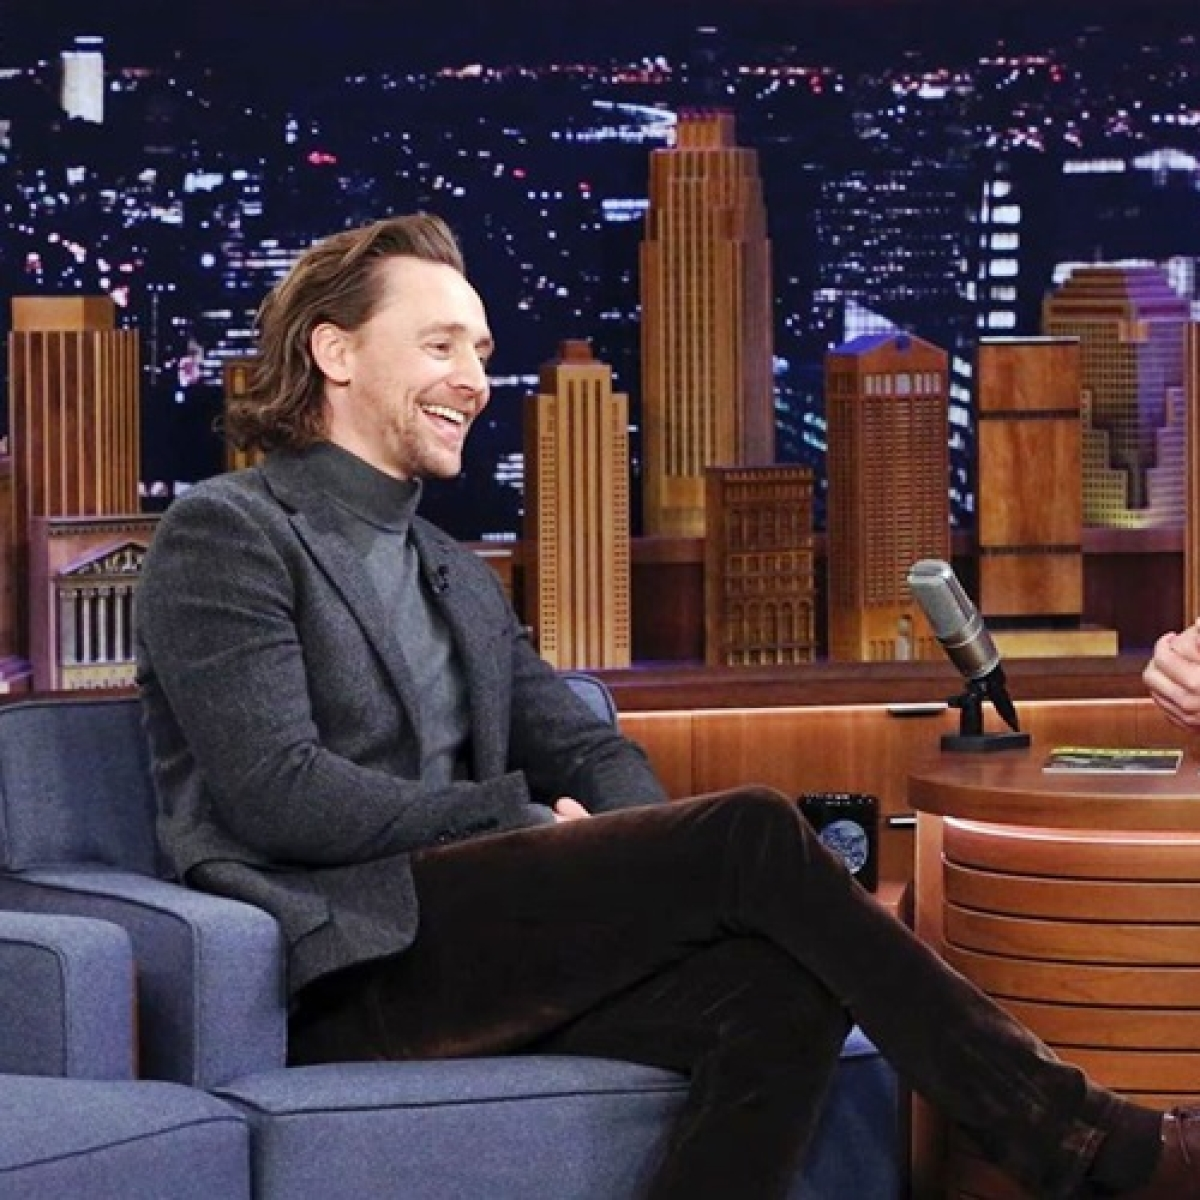 Tom Hiddleston facepalms after watching his audition tape as 'Thor'